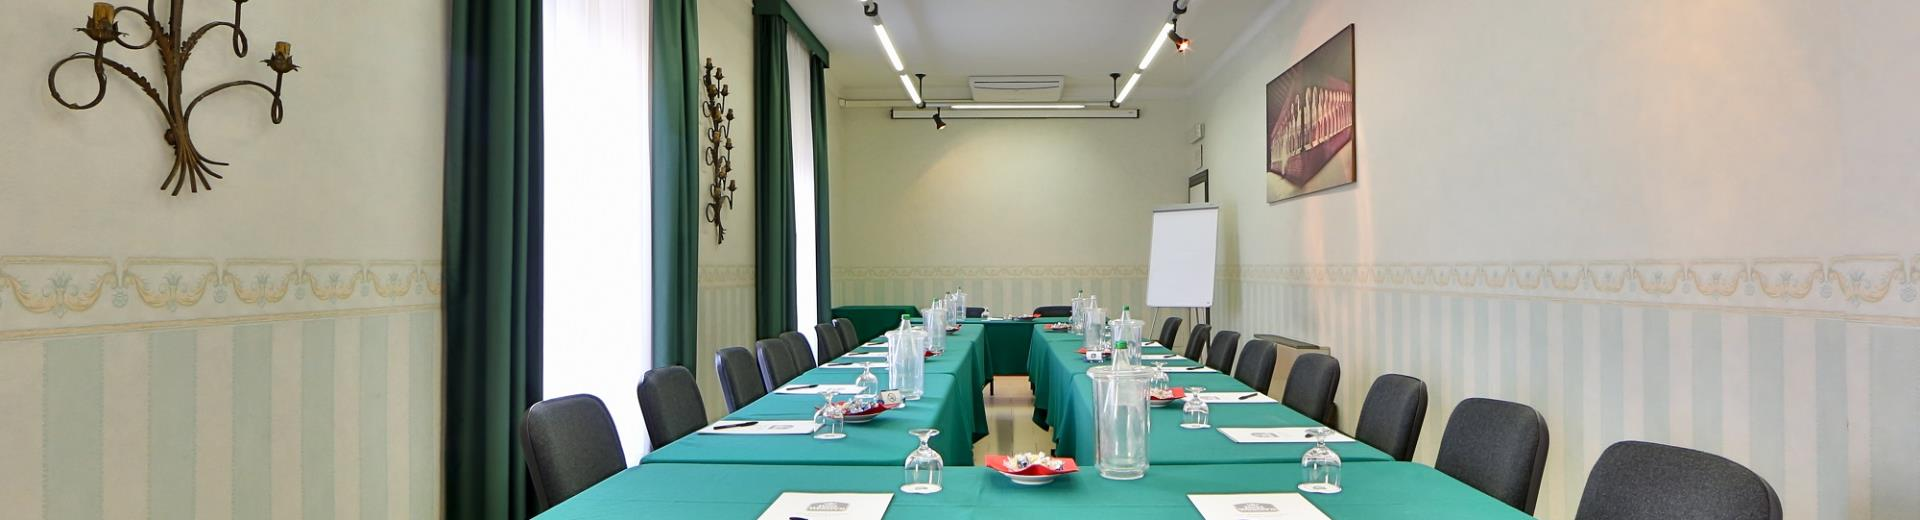 Meeting rooms and meeting rooms at the Hotel San Donato Bologna